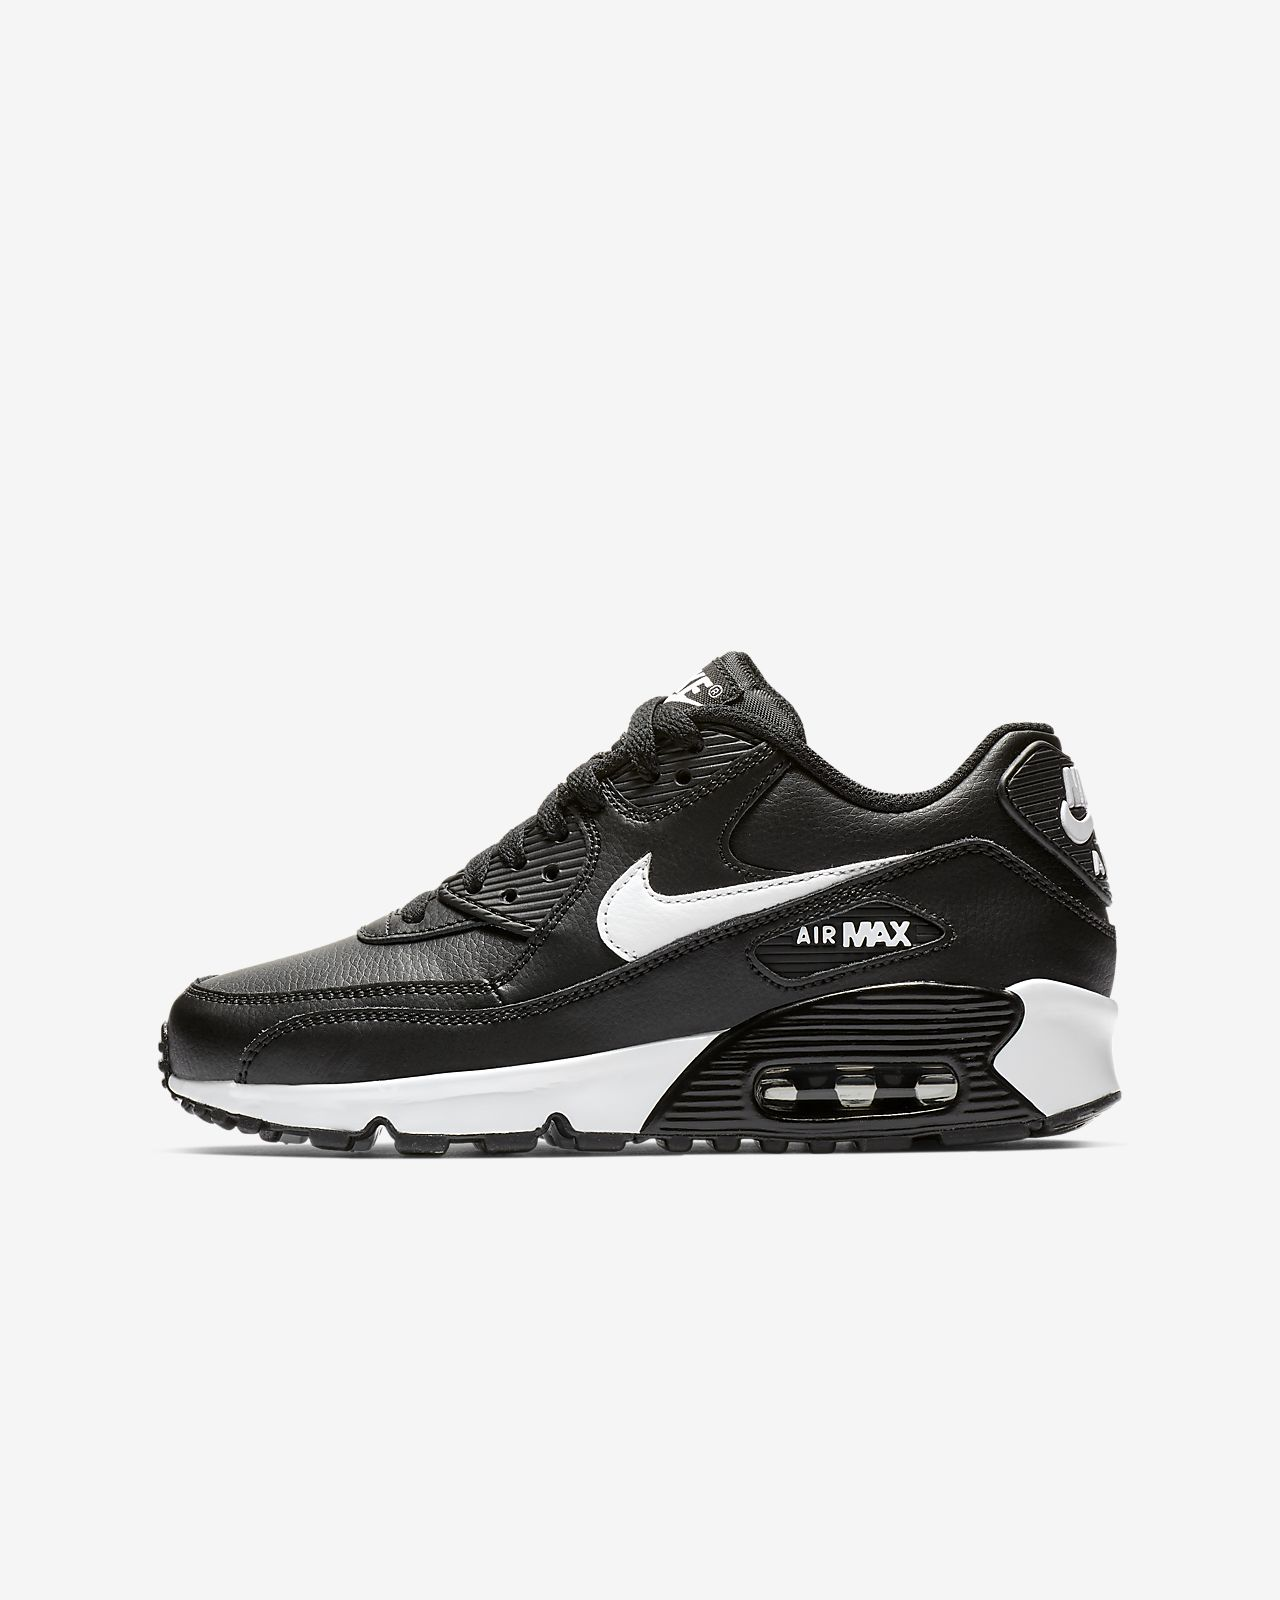 reputable site 75d70 a79e9 ... Nike Air Max 90 Leather Older Kids  Shoe